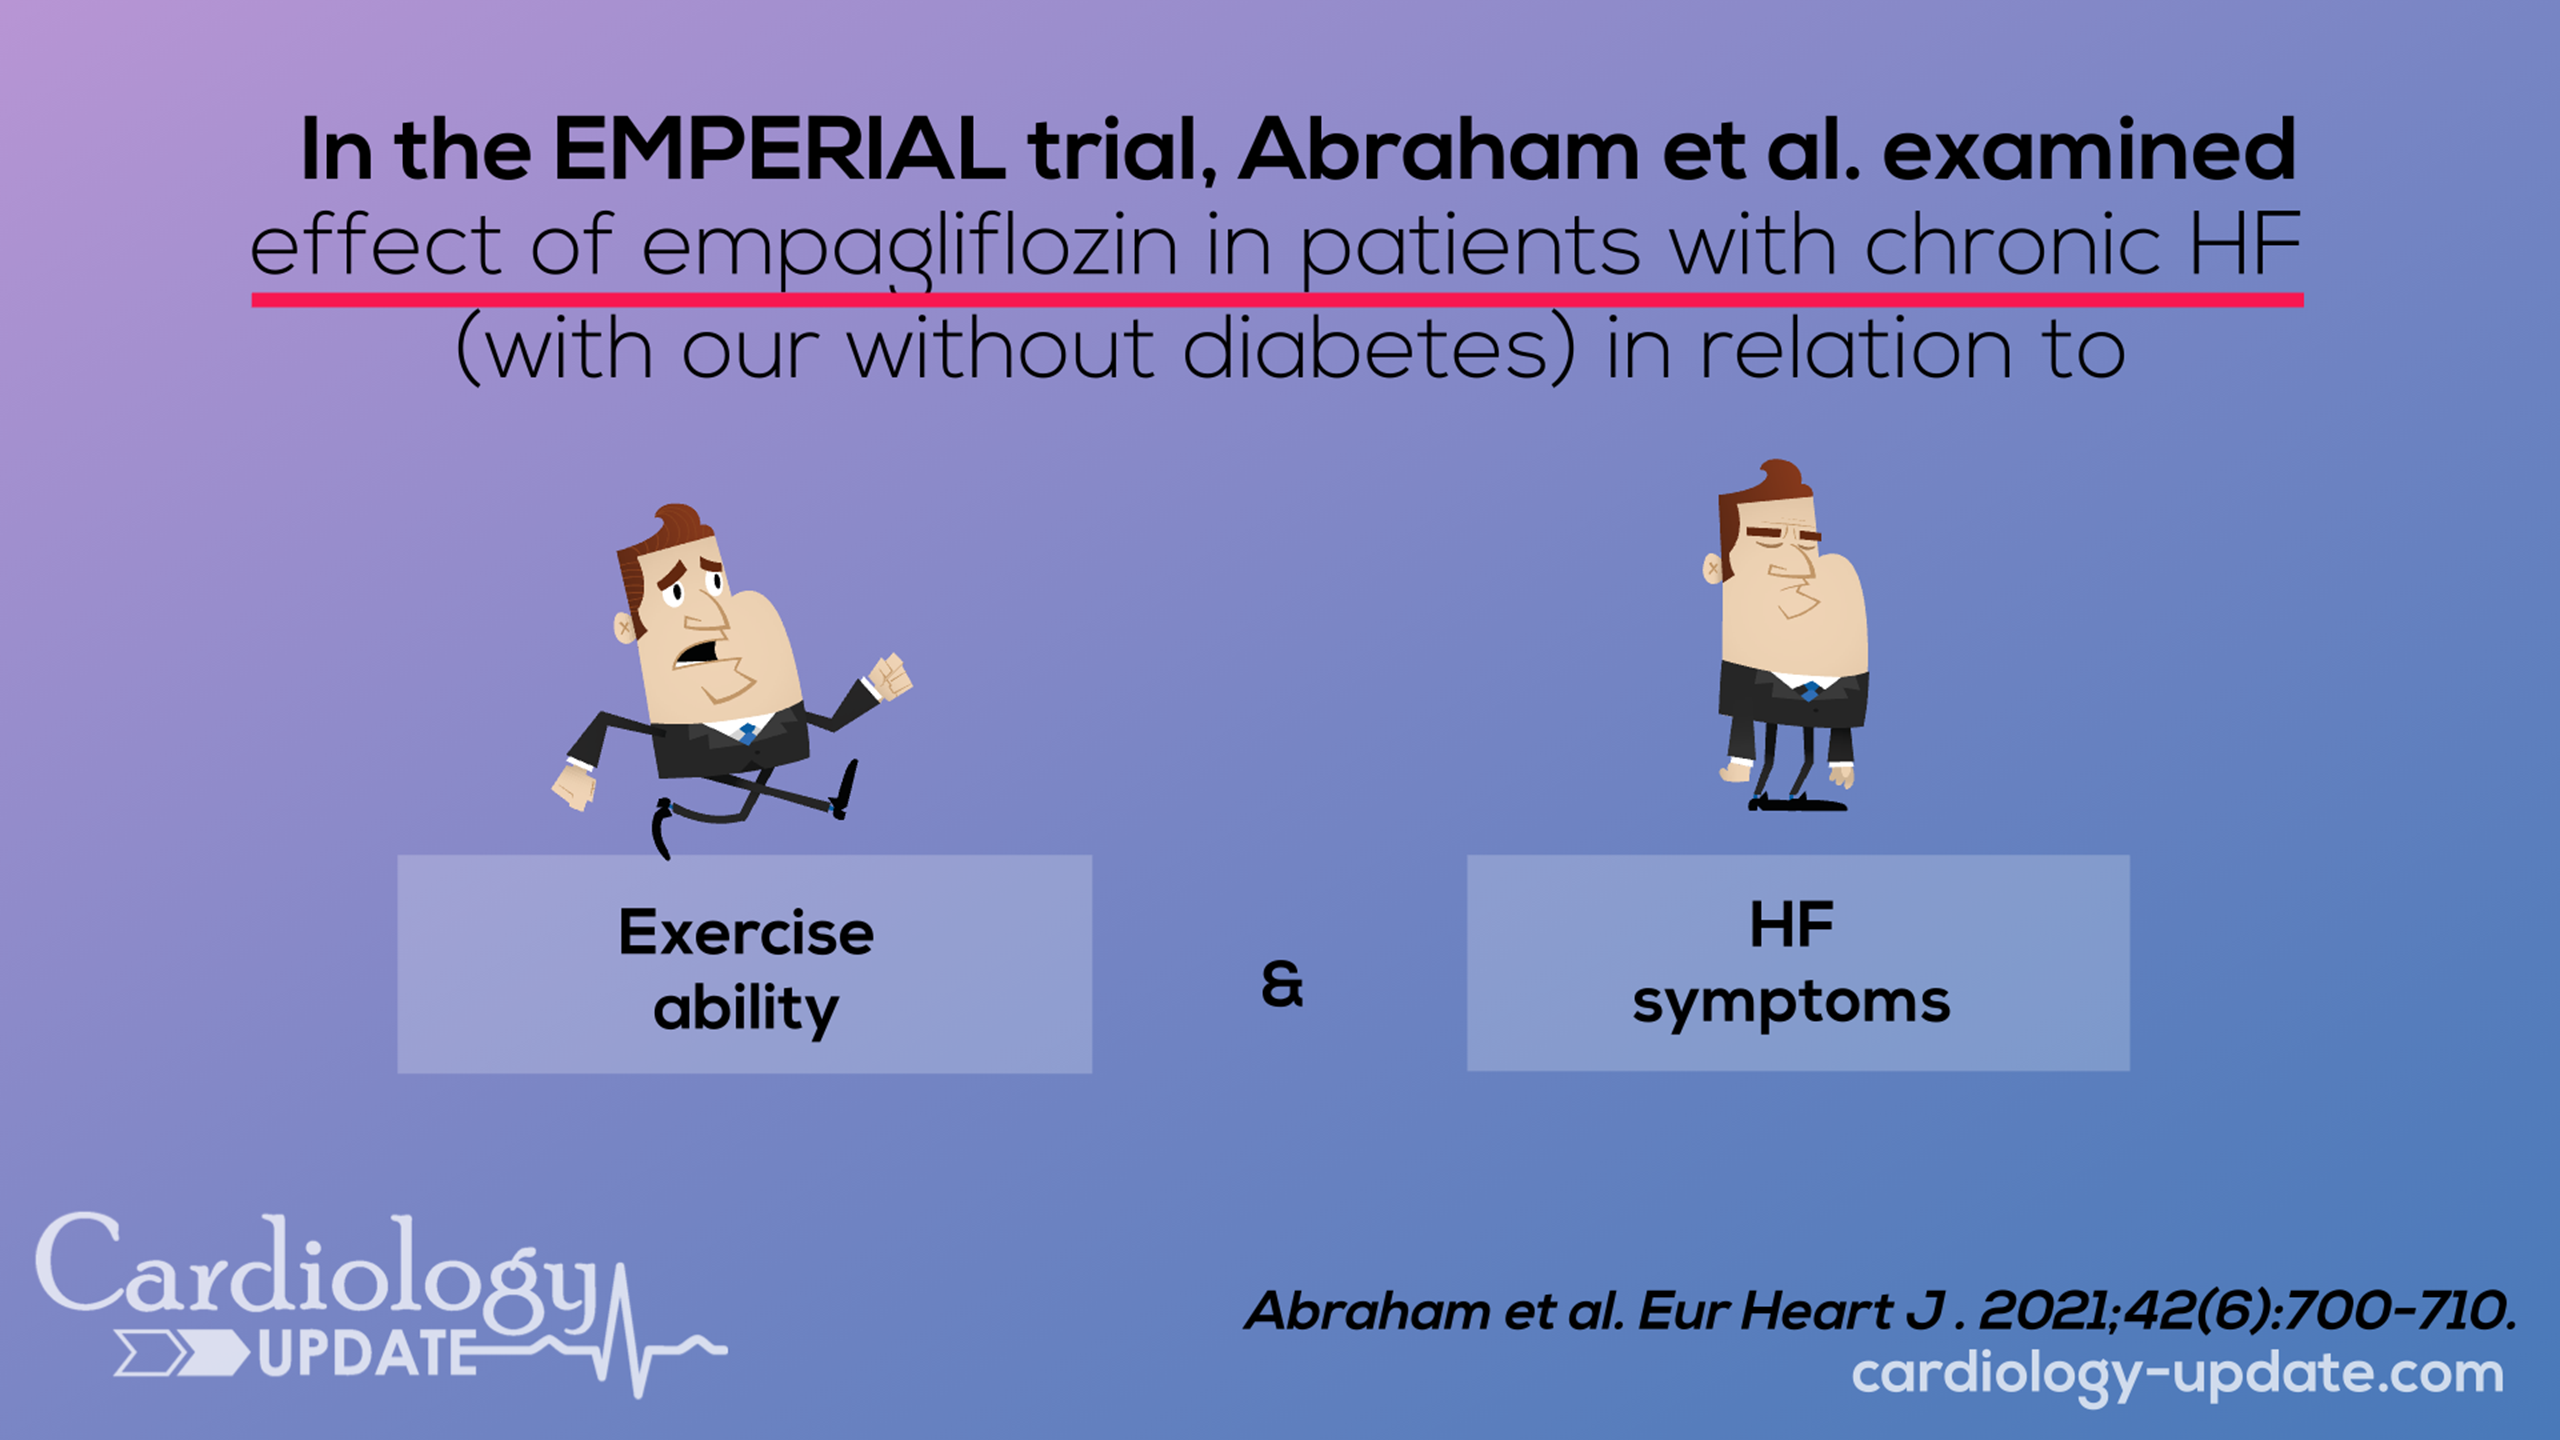 Effect of Empagliflozin on exercise ability and symptoms in heart failure patients